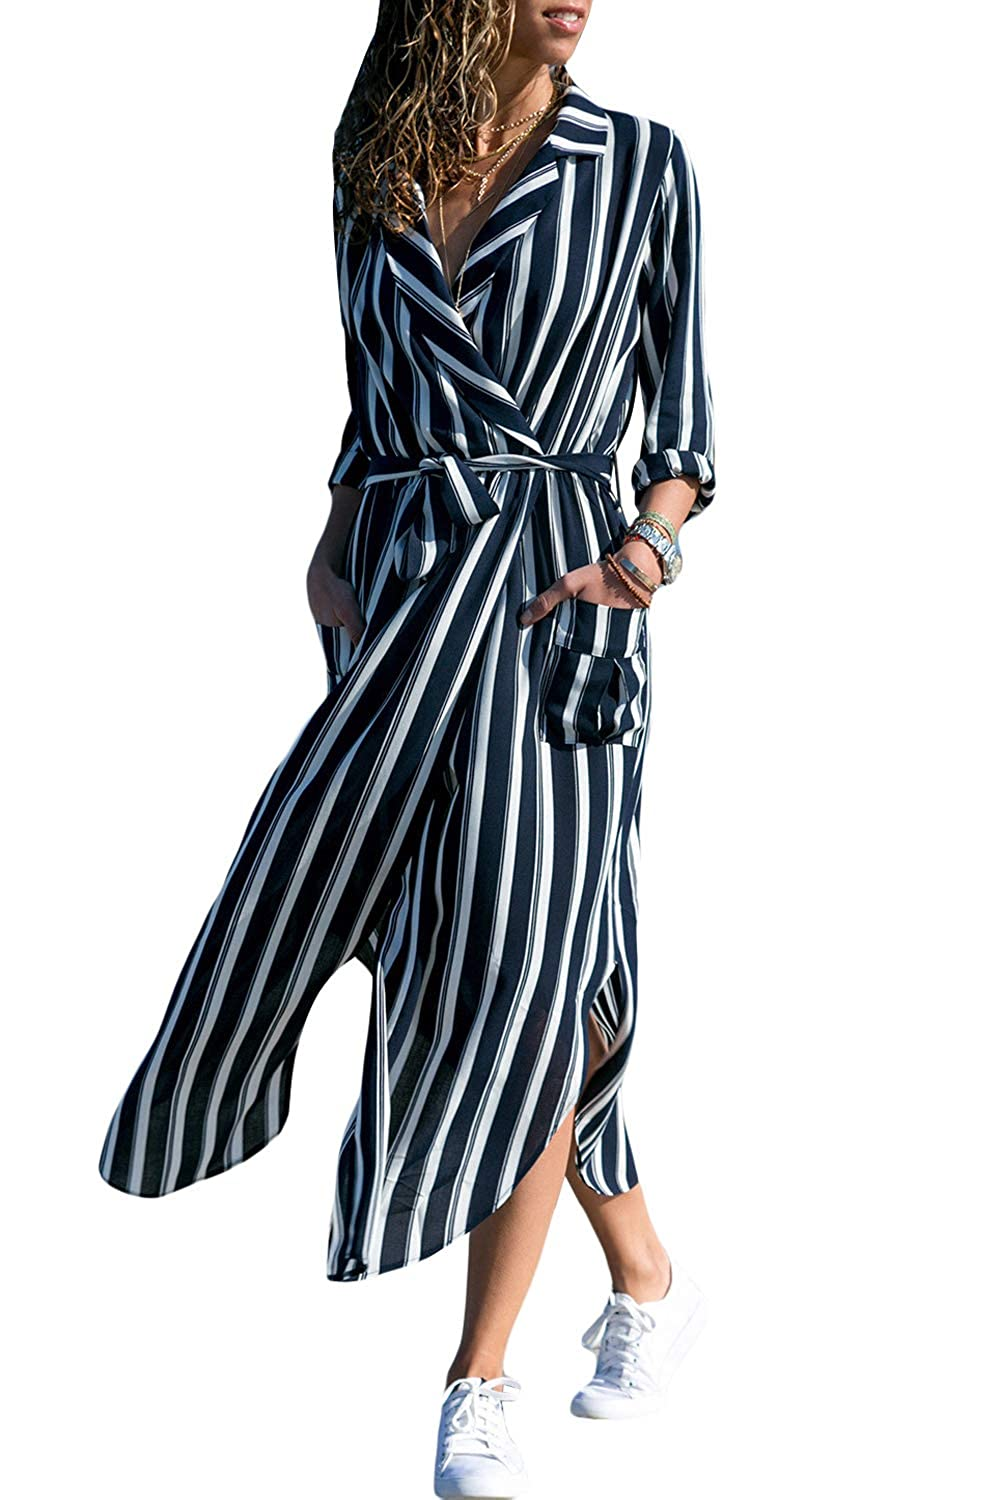 dcf2bd8aa SEBOWEL Womens Floral Printed Roll Sleeve Button Down Long Wrap Belted Maxi  Shirt Dress at Amazon Women's Clothing store: